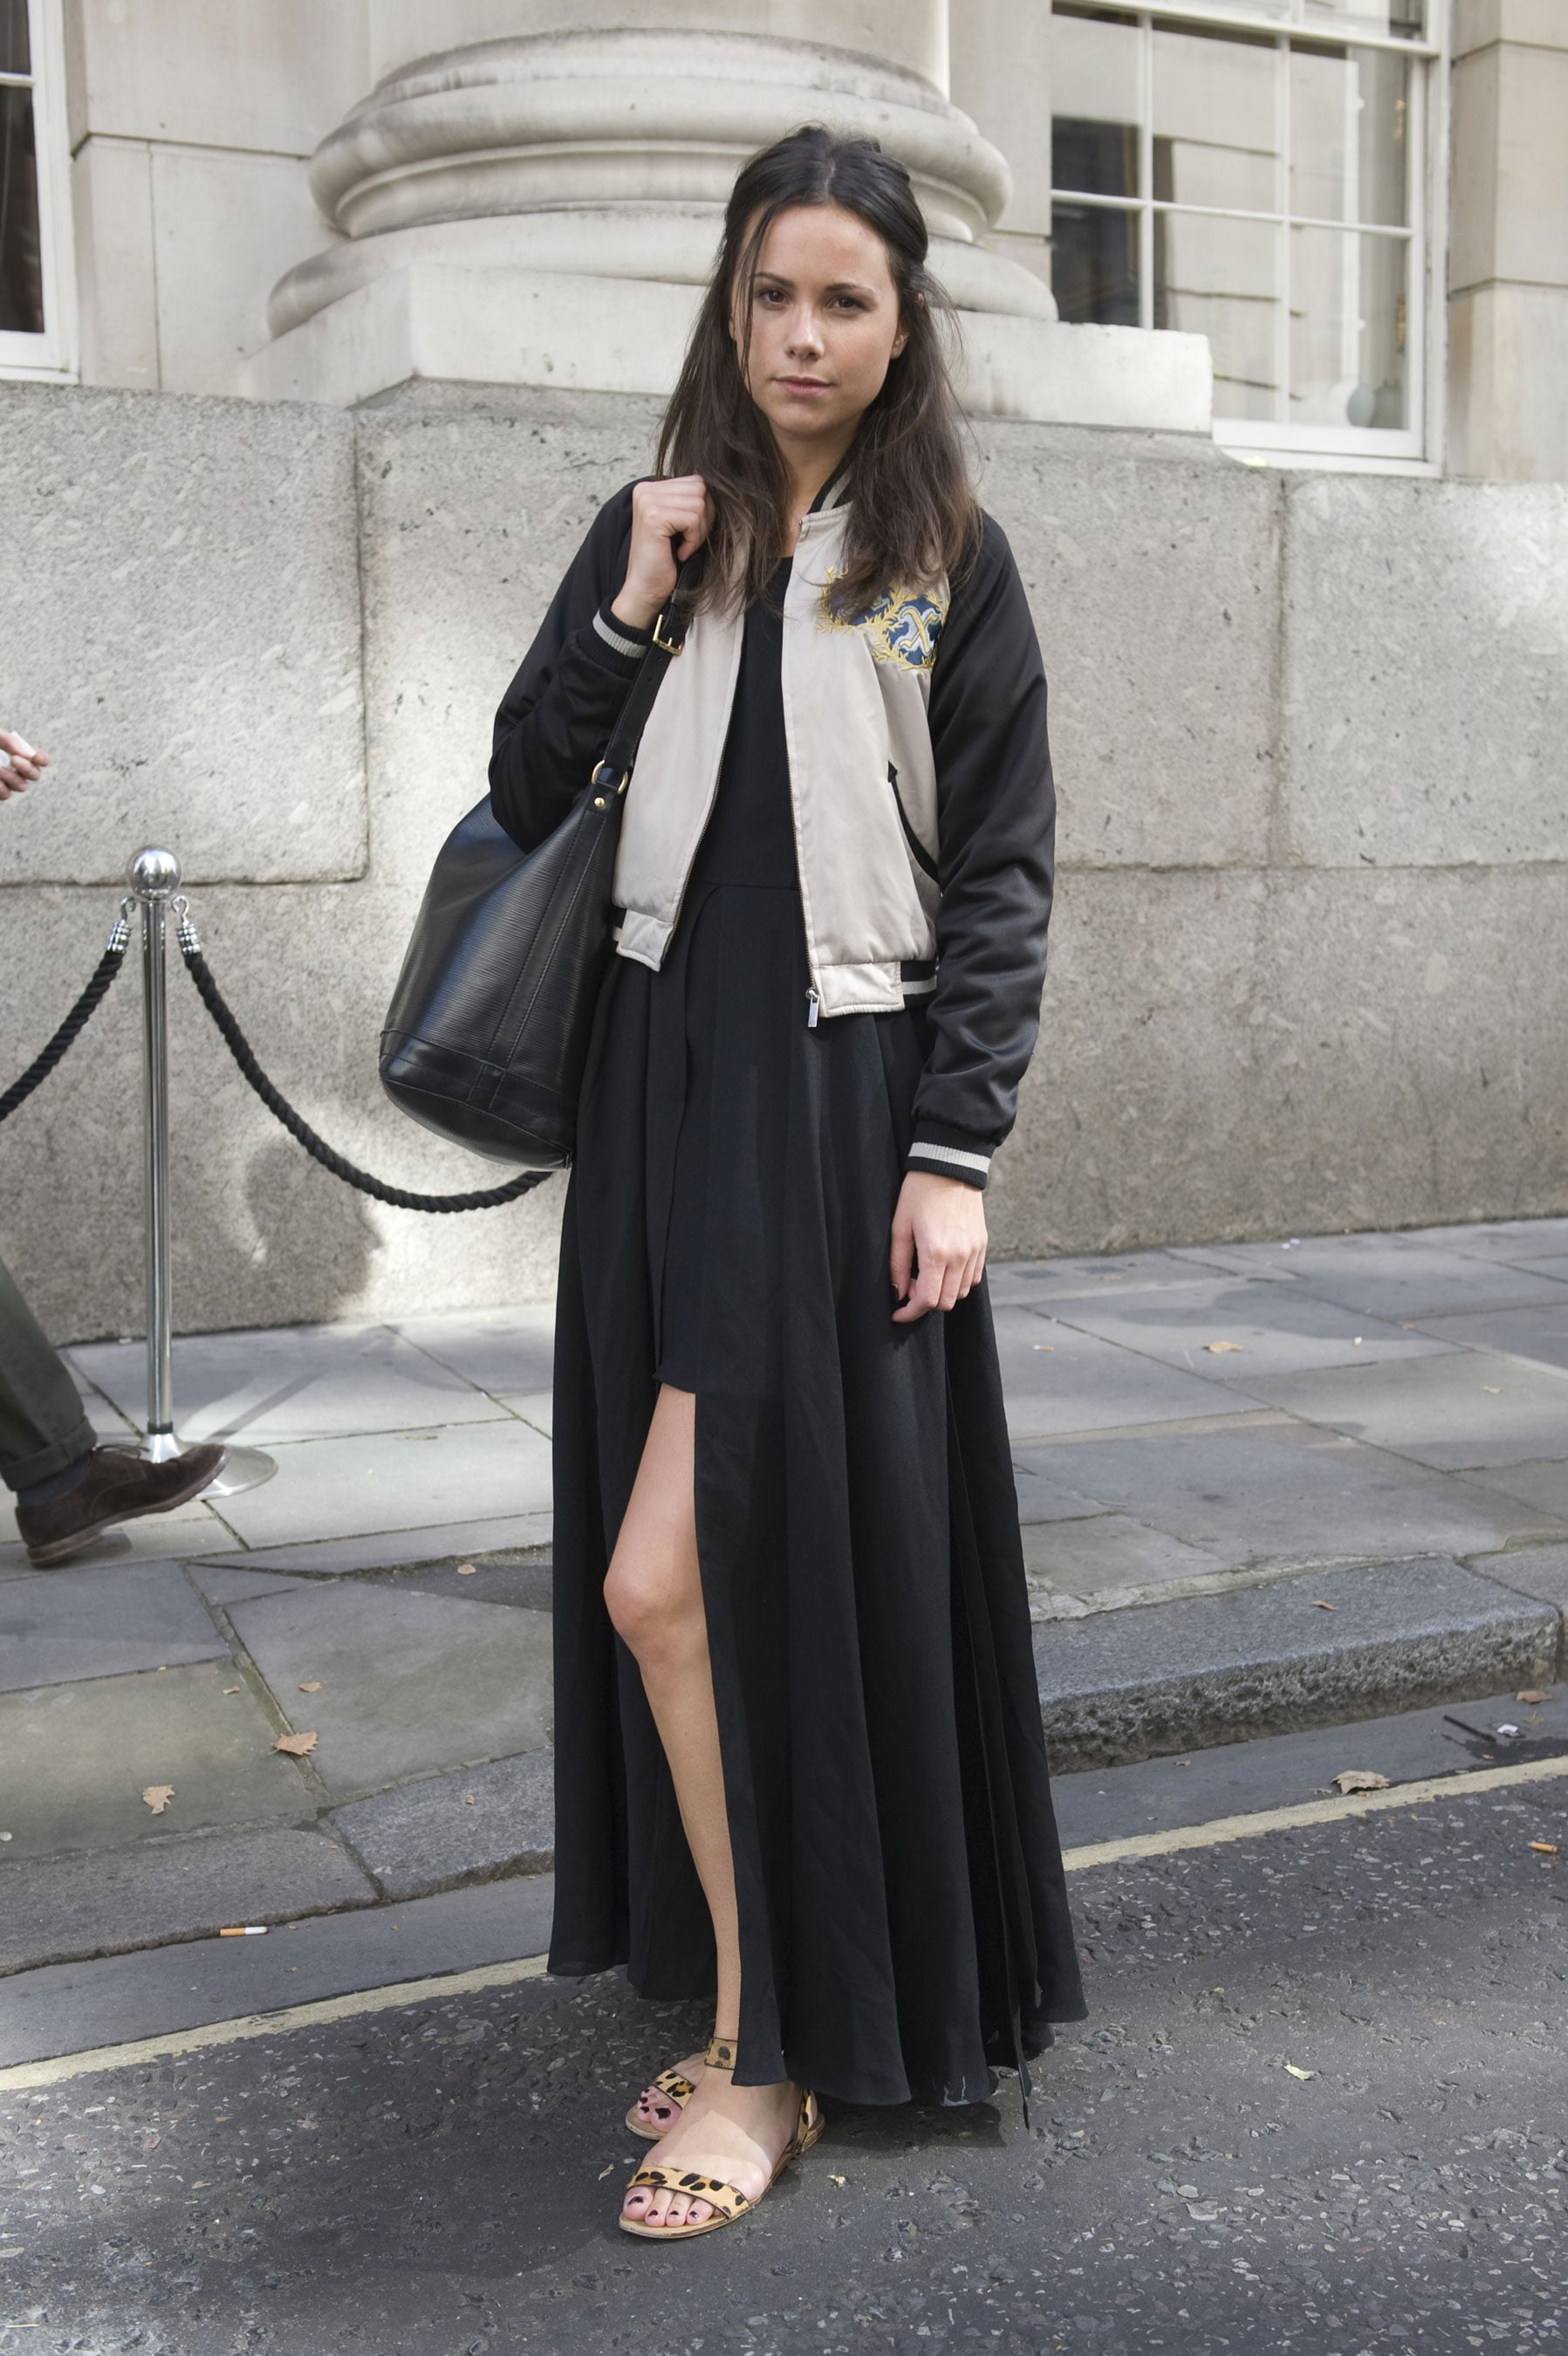 The varsity jacket gave a maxi dress sporty-chic appeal.